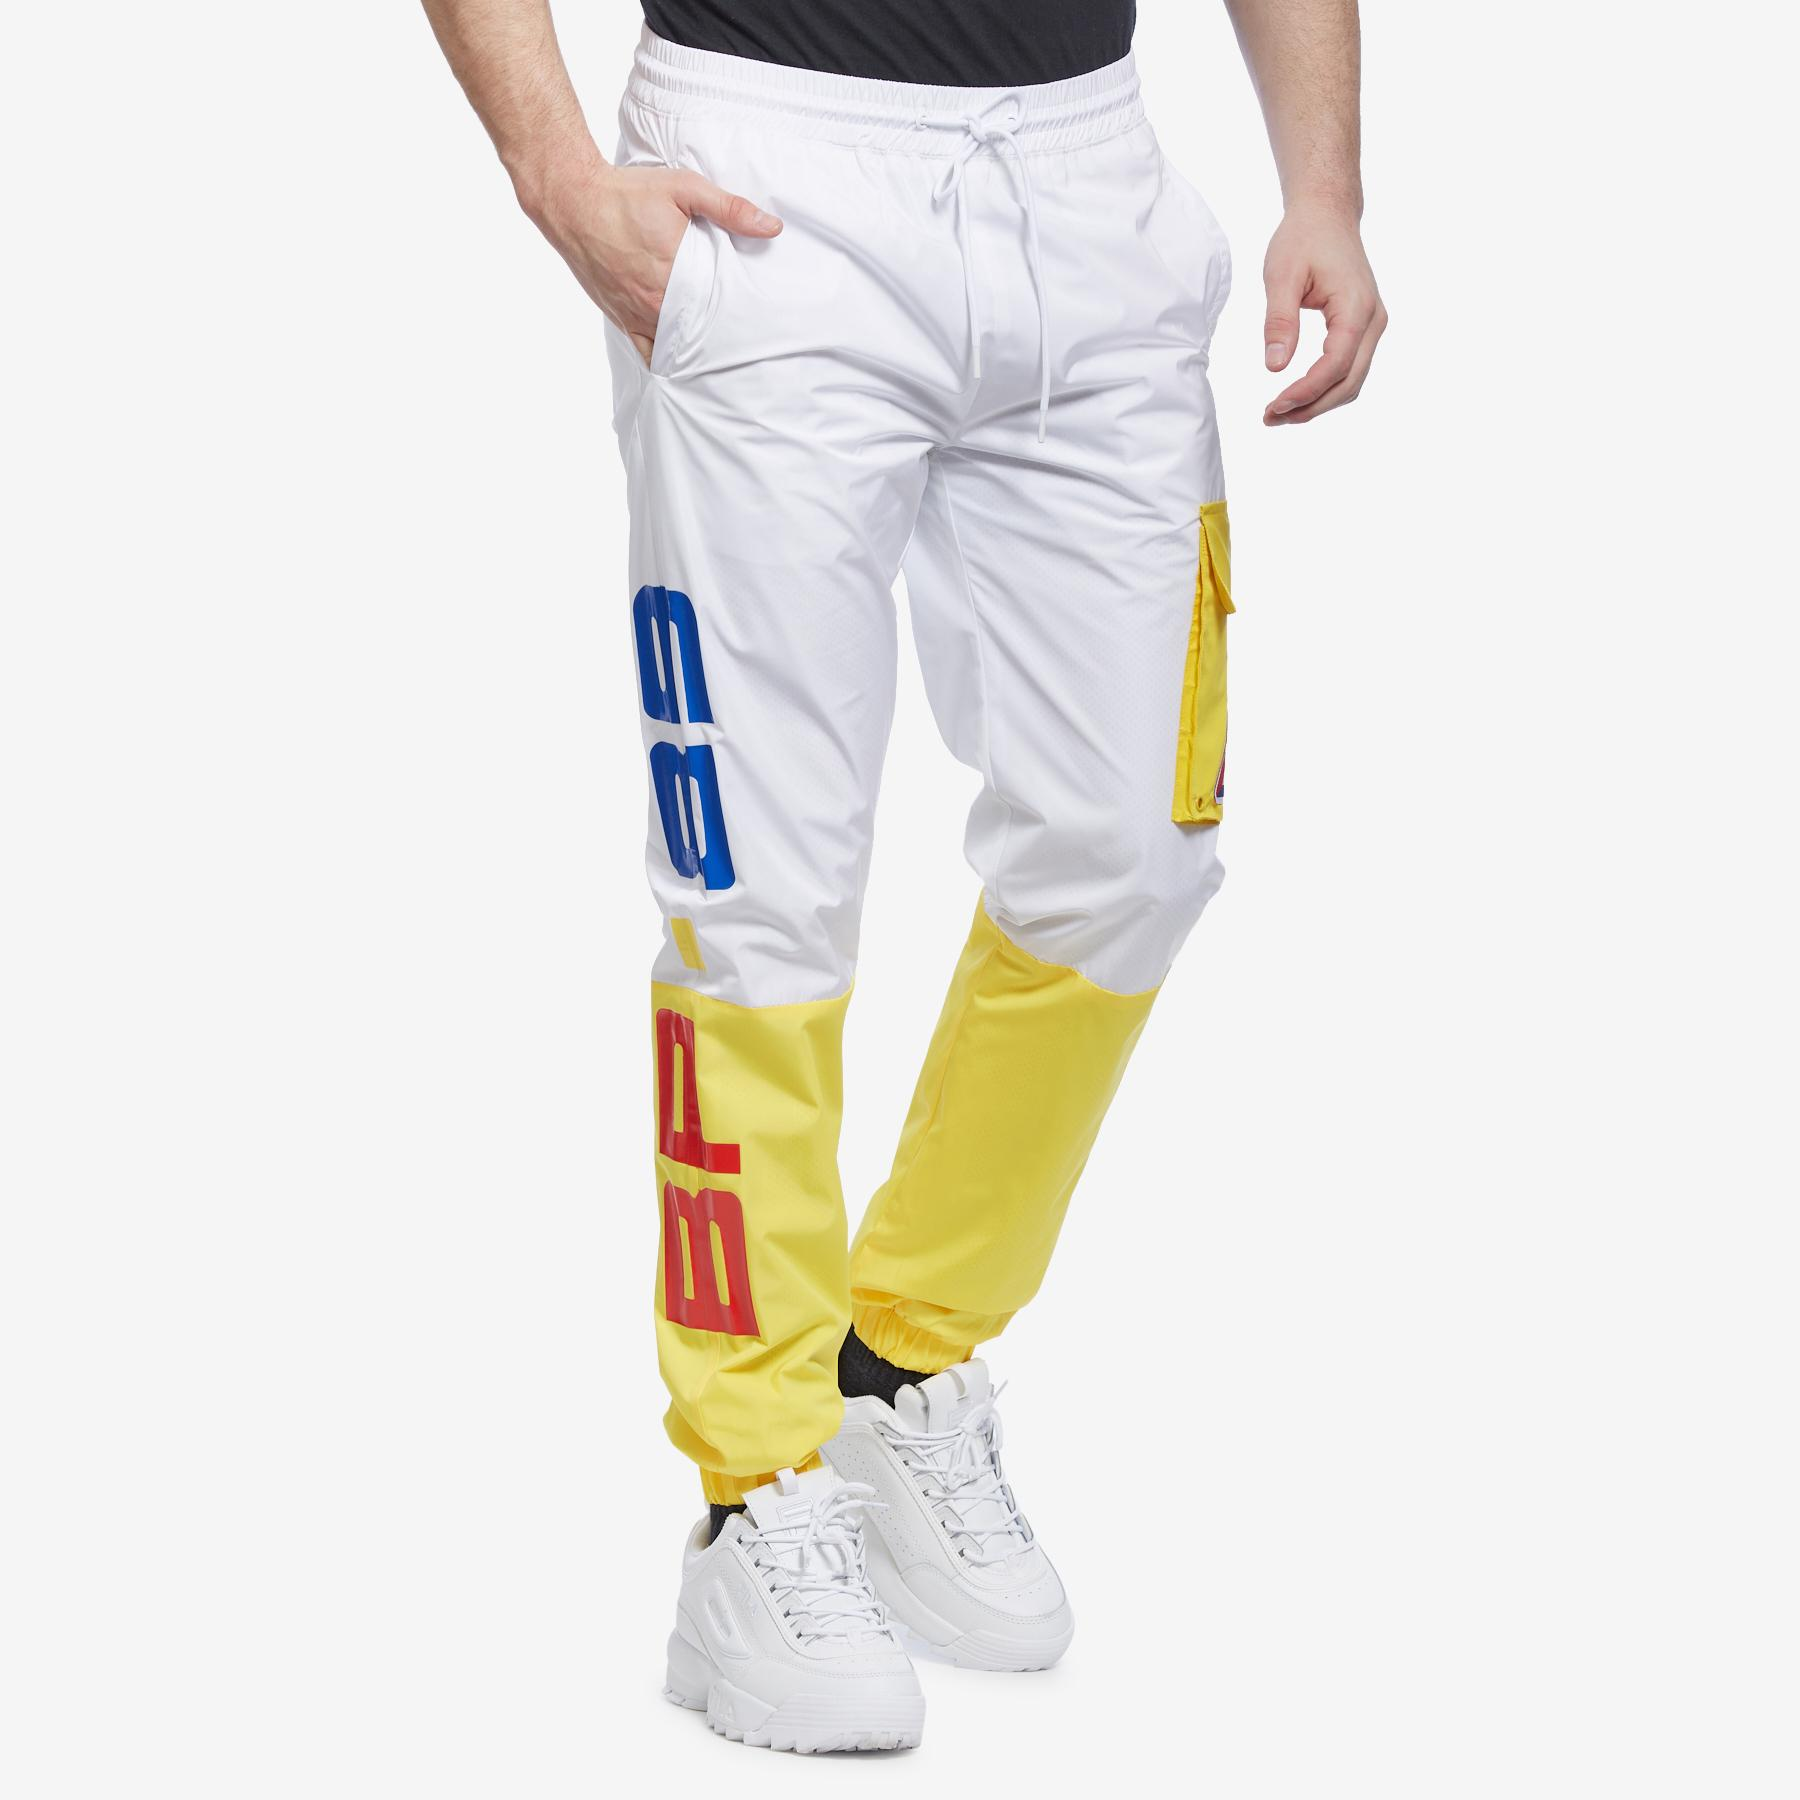 Men's Bp- 89 Sailing Pant